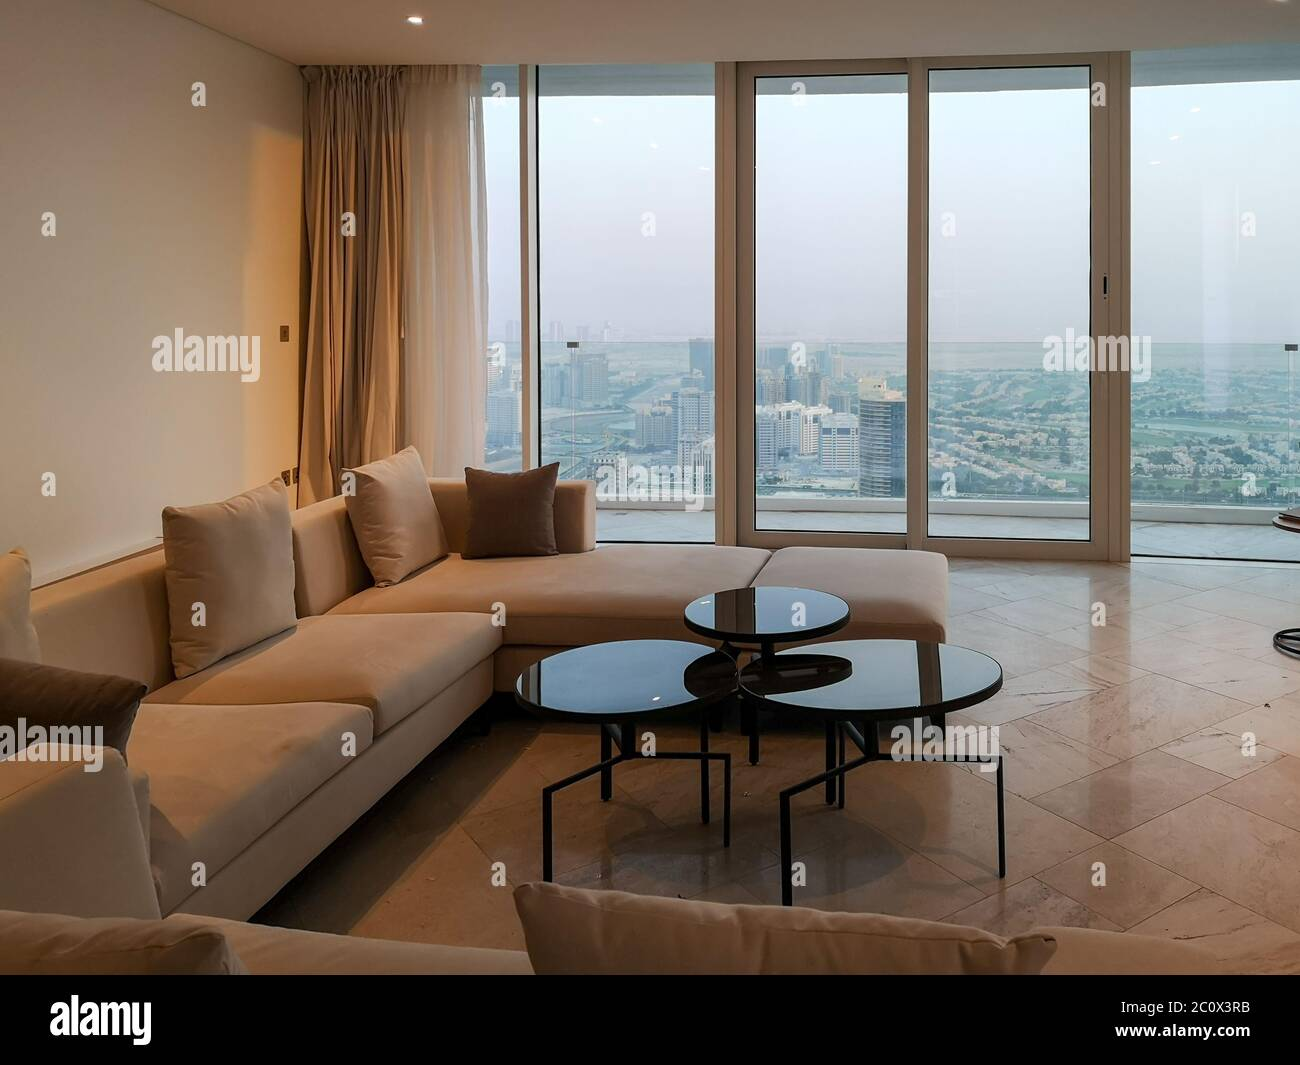 Private Luxurious Hotel Apartment On A High Floor In A Tower Modern Design Dubai Luxury Stock Photo Alamy